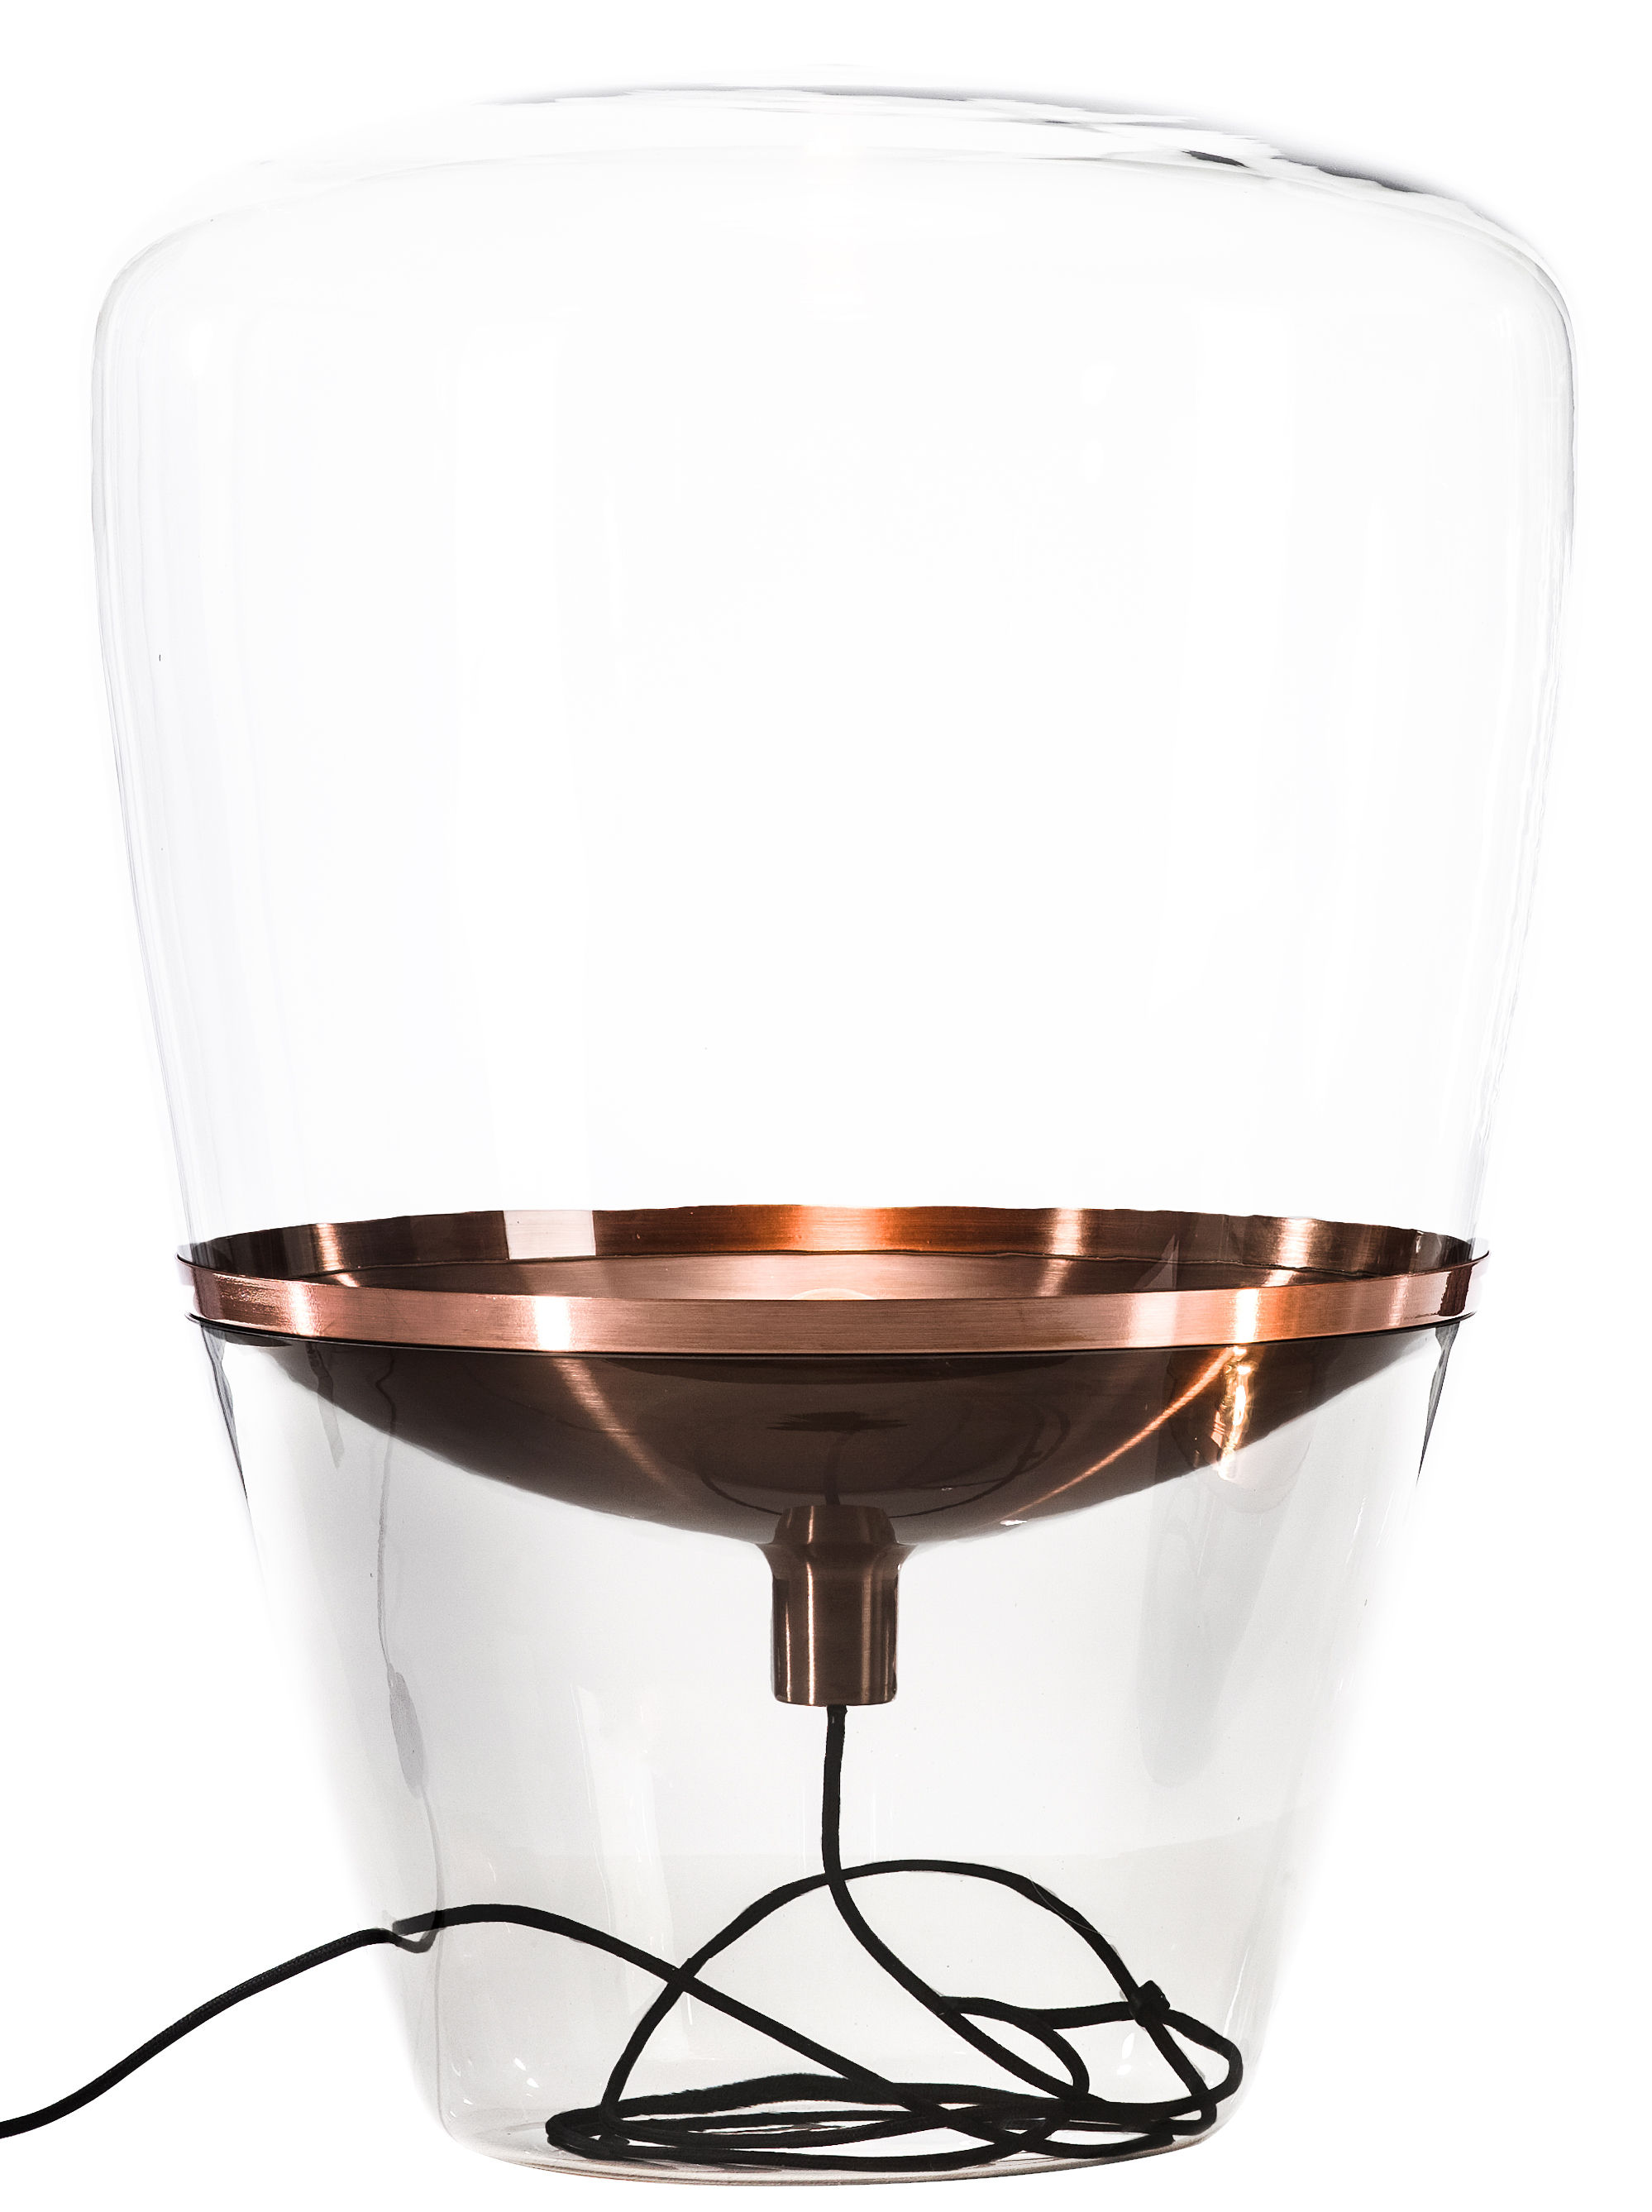 Lighting - Floor lamps - Balloon Large Lamp by Brokis - Transparent glass / Copper - Moulded Mouth blown glass, Painted aluminium